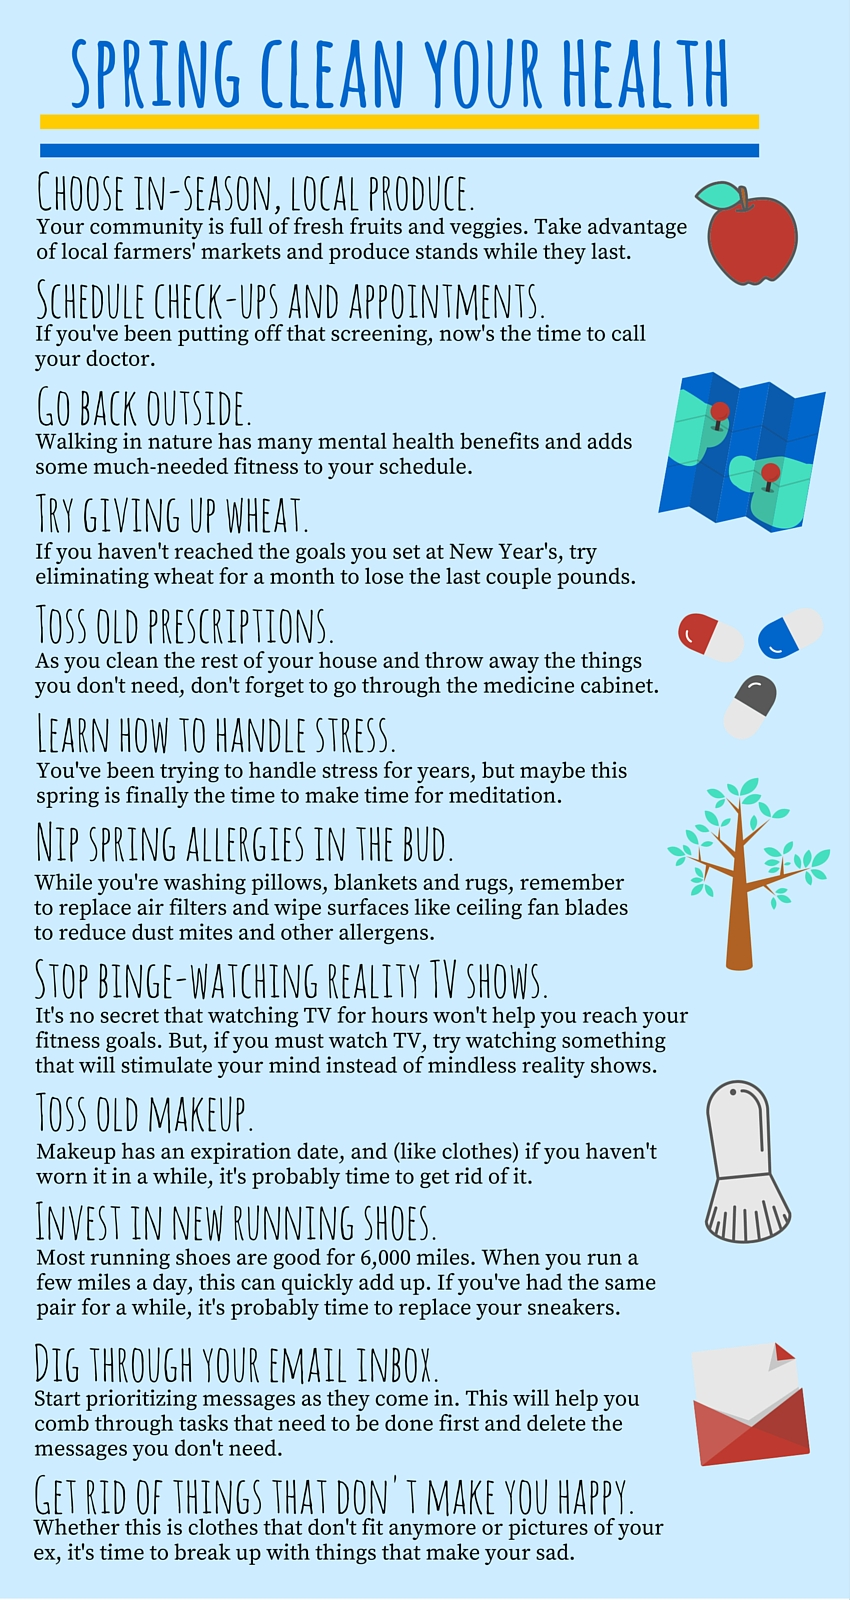 How to spring clean your health